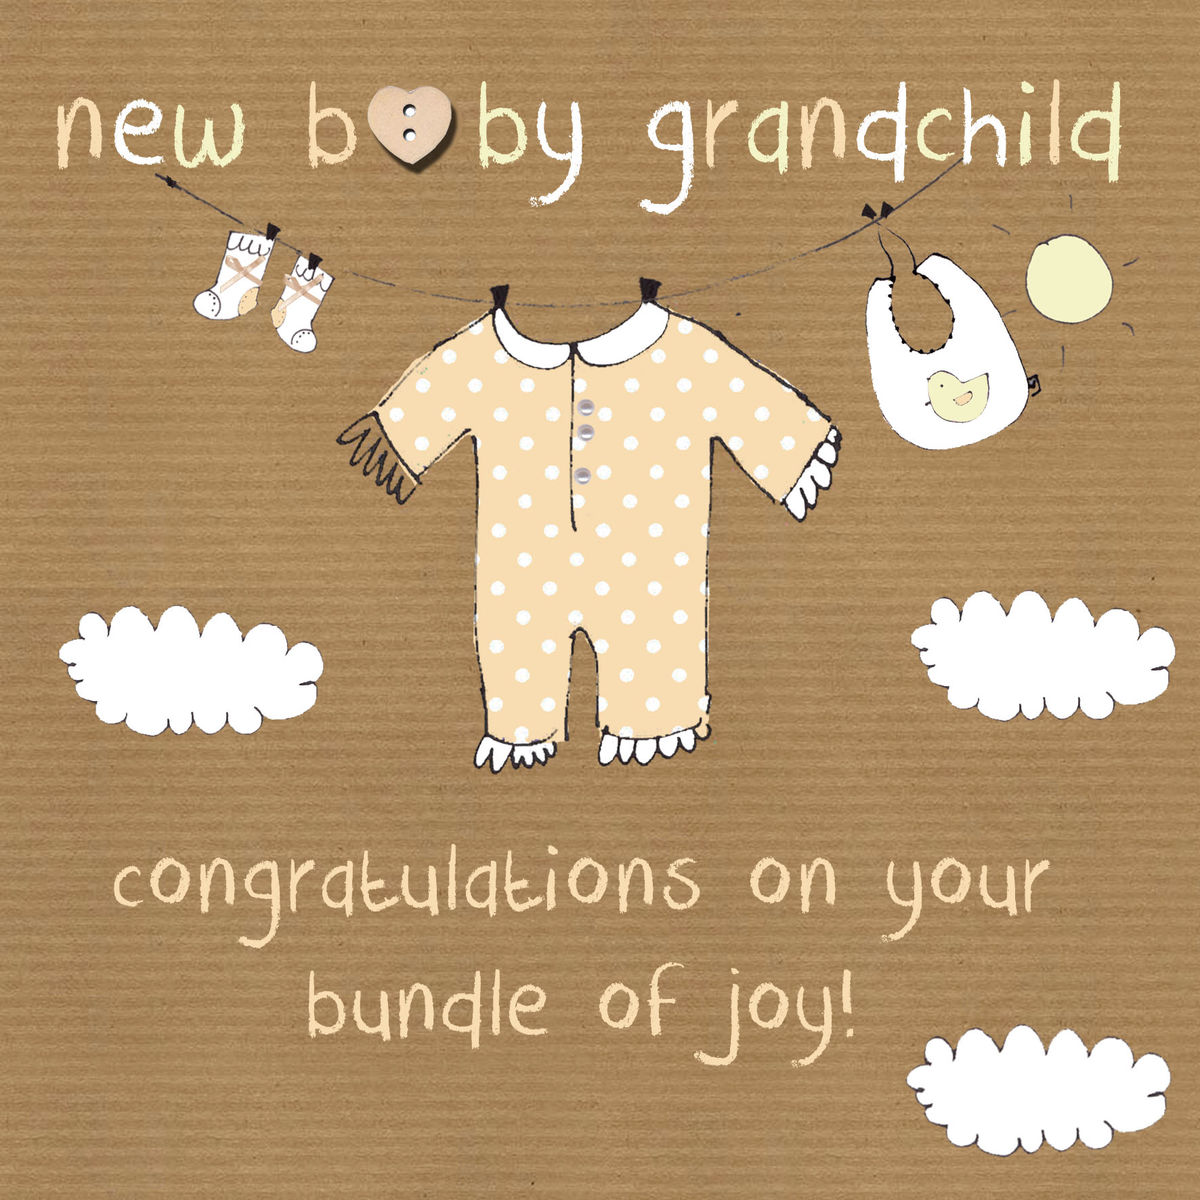 New baby grandchild card perfect for a new grandparent new baby grandchild card perfect for a new grandparent kristyandbryce Choice Image